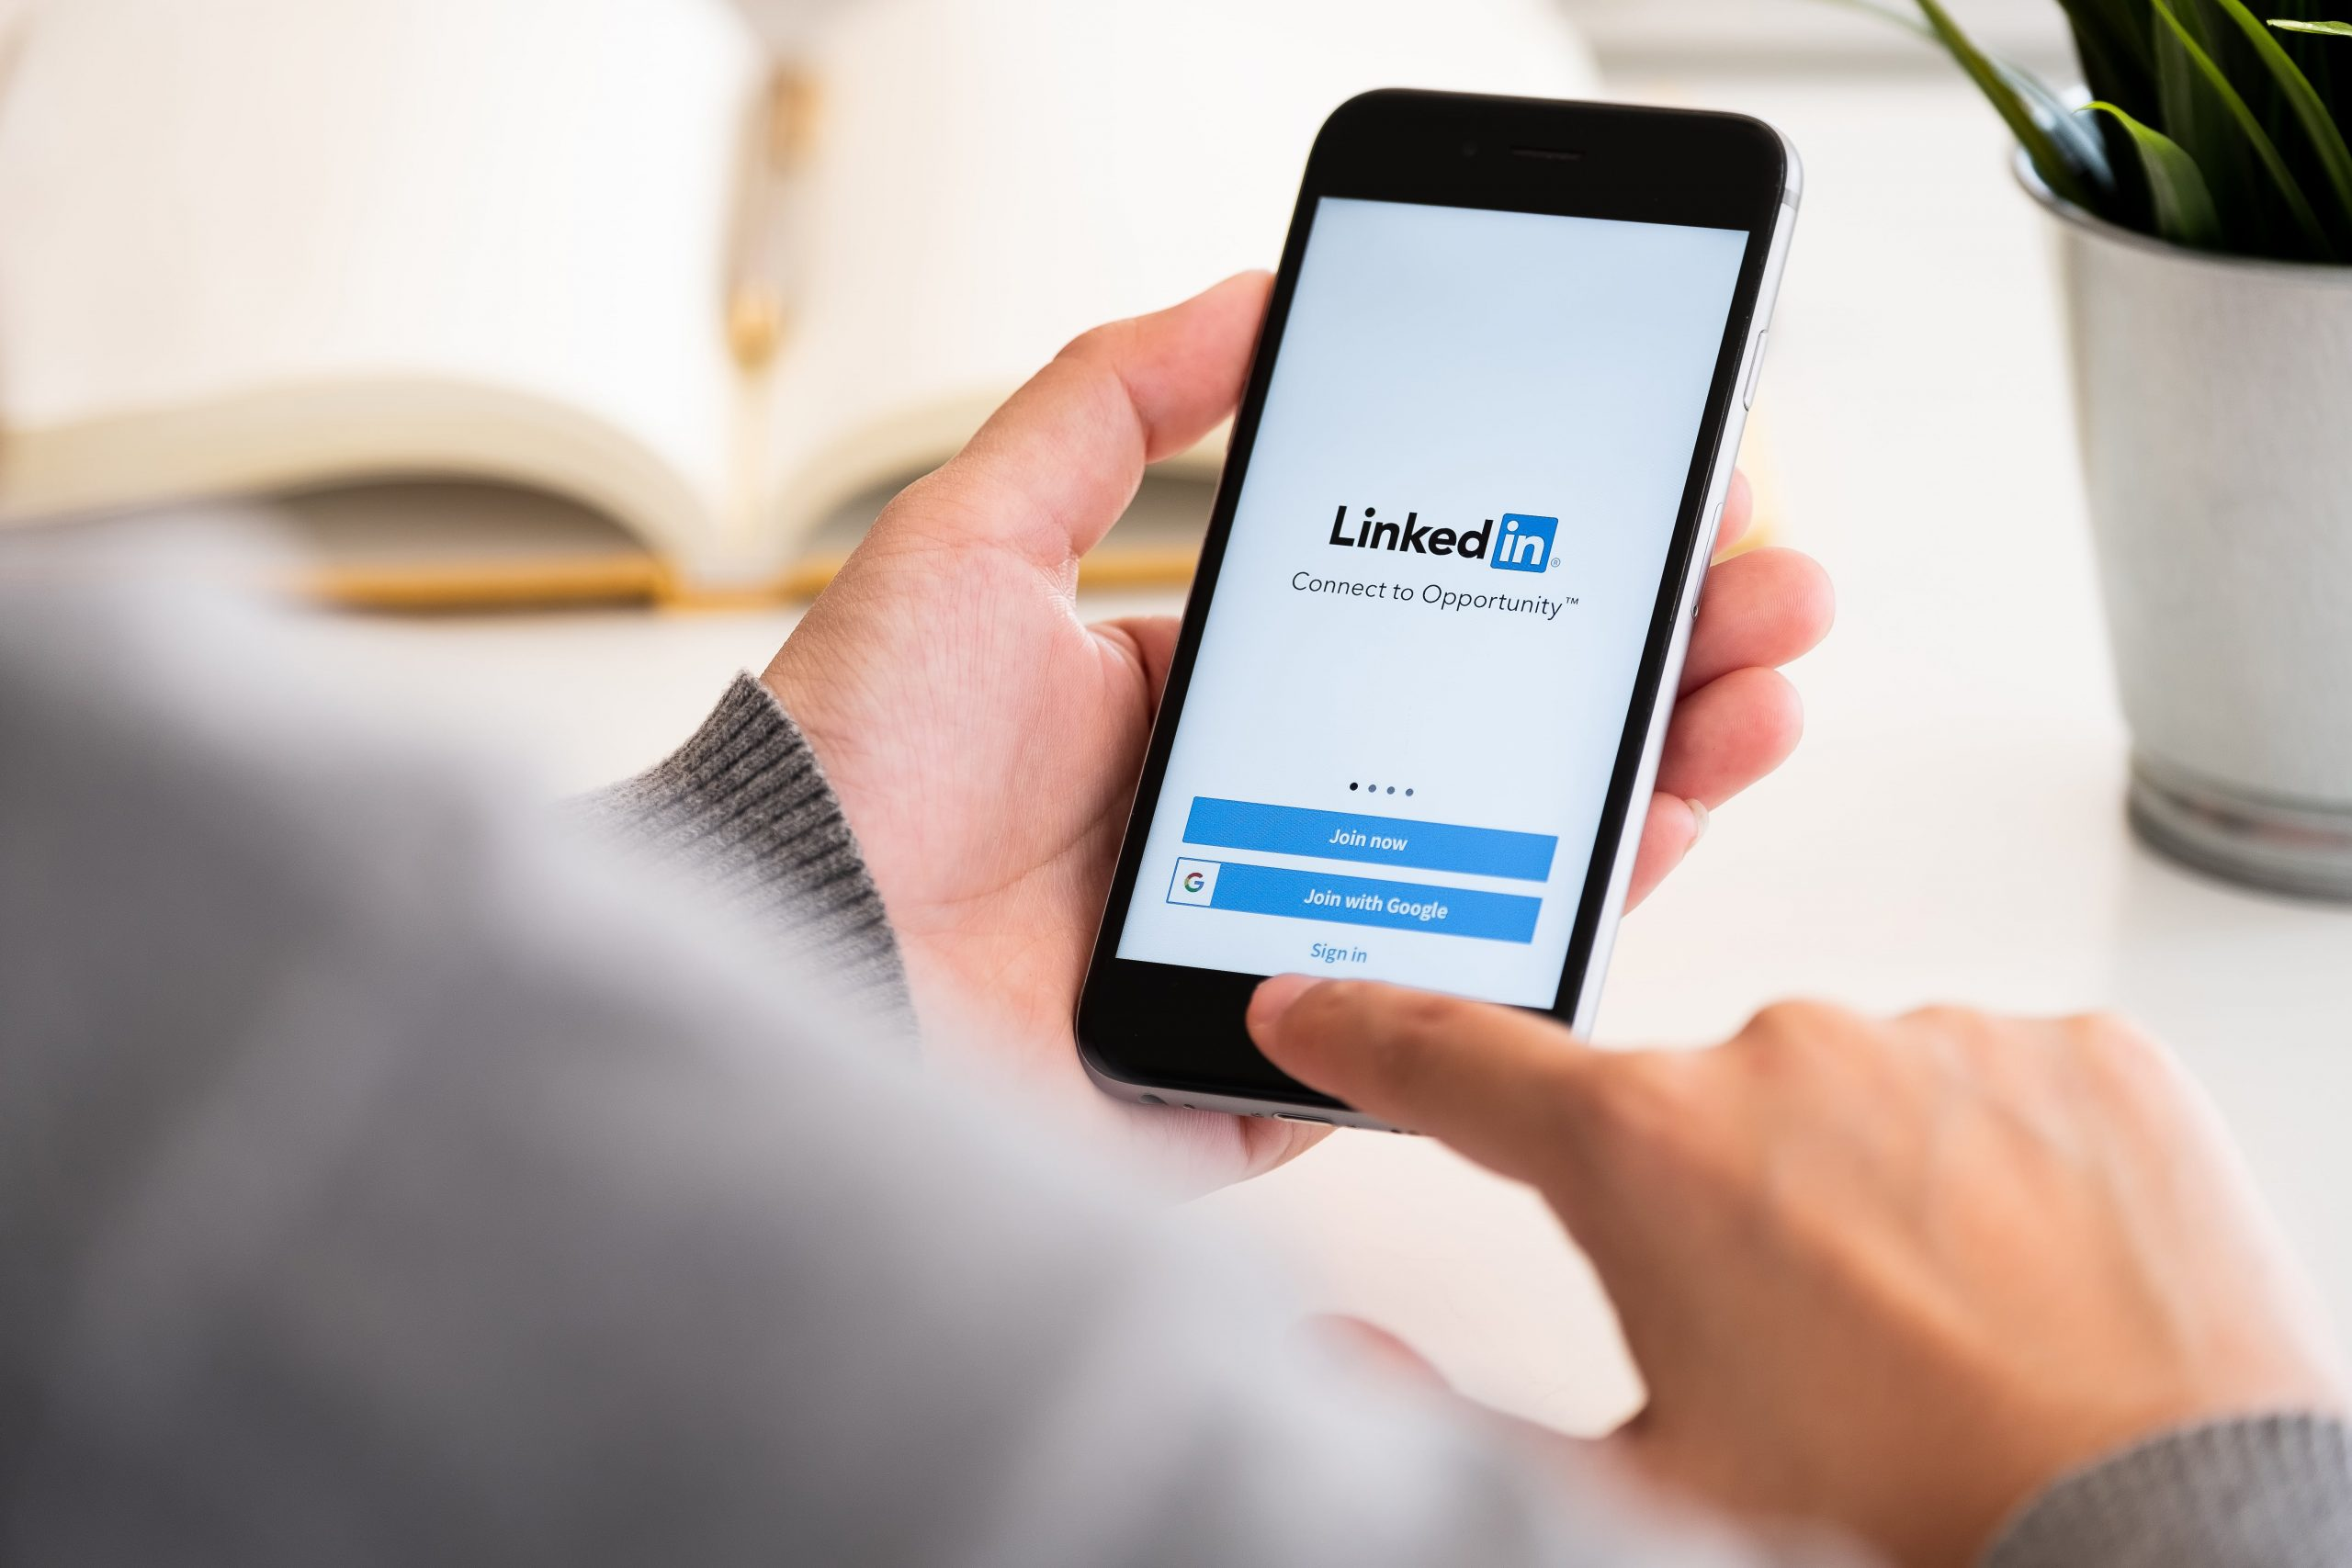 What You Need To Know About Using LinkedIn for Marketing